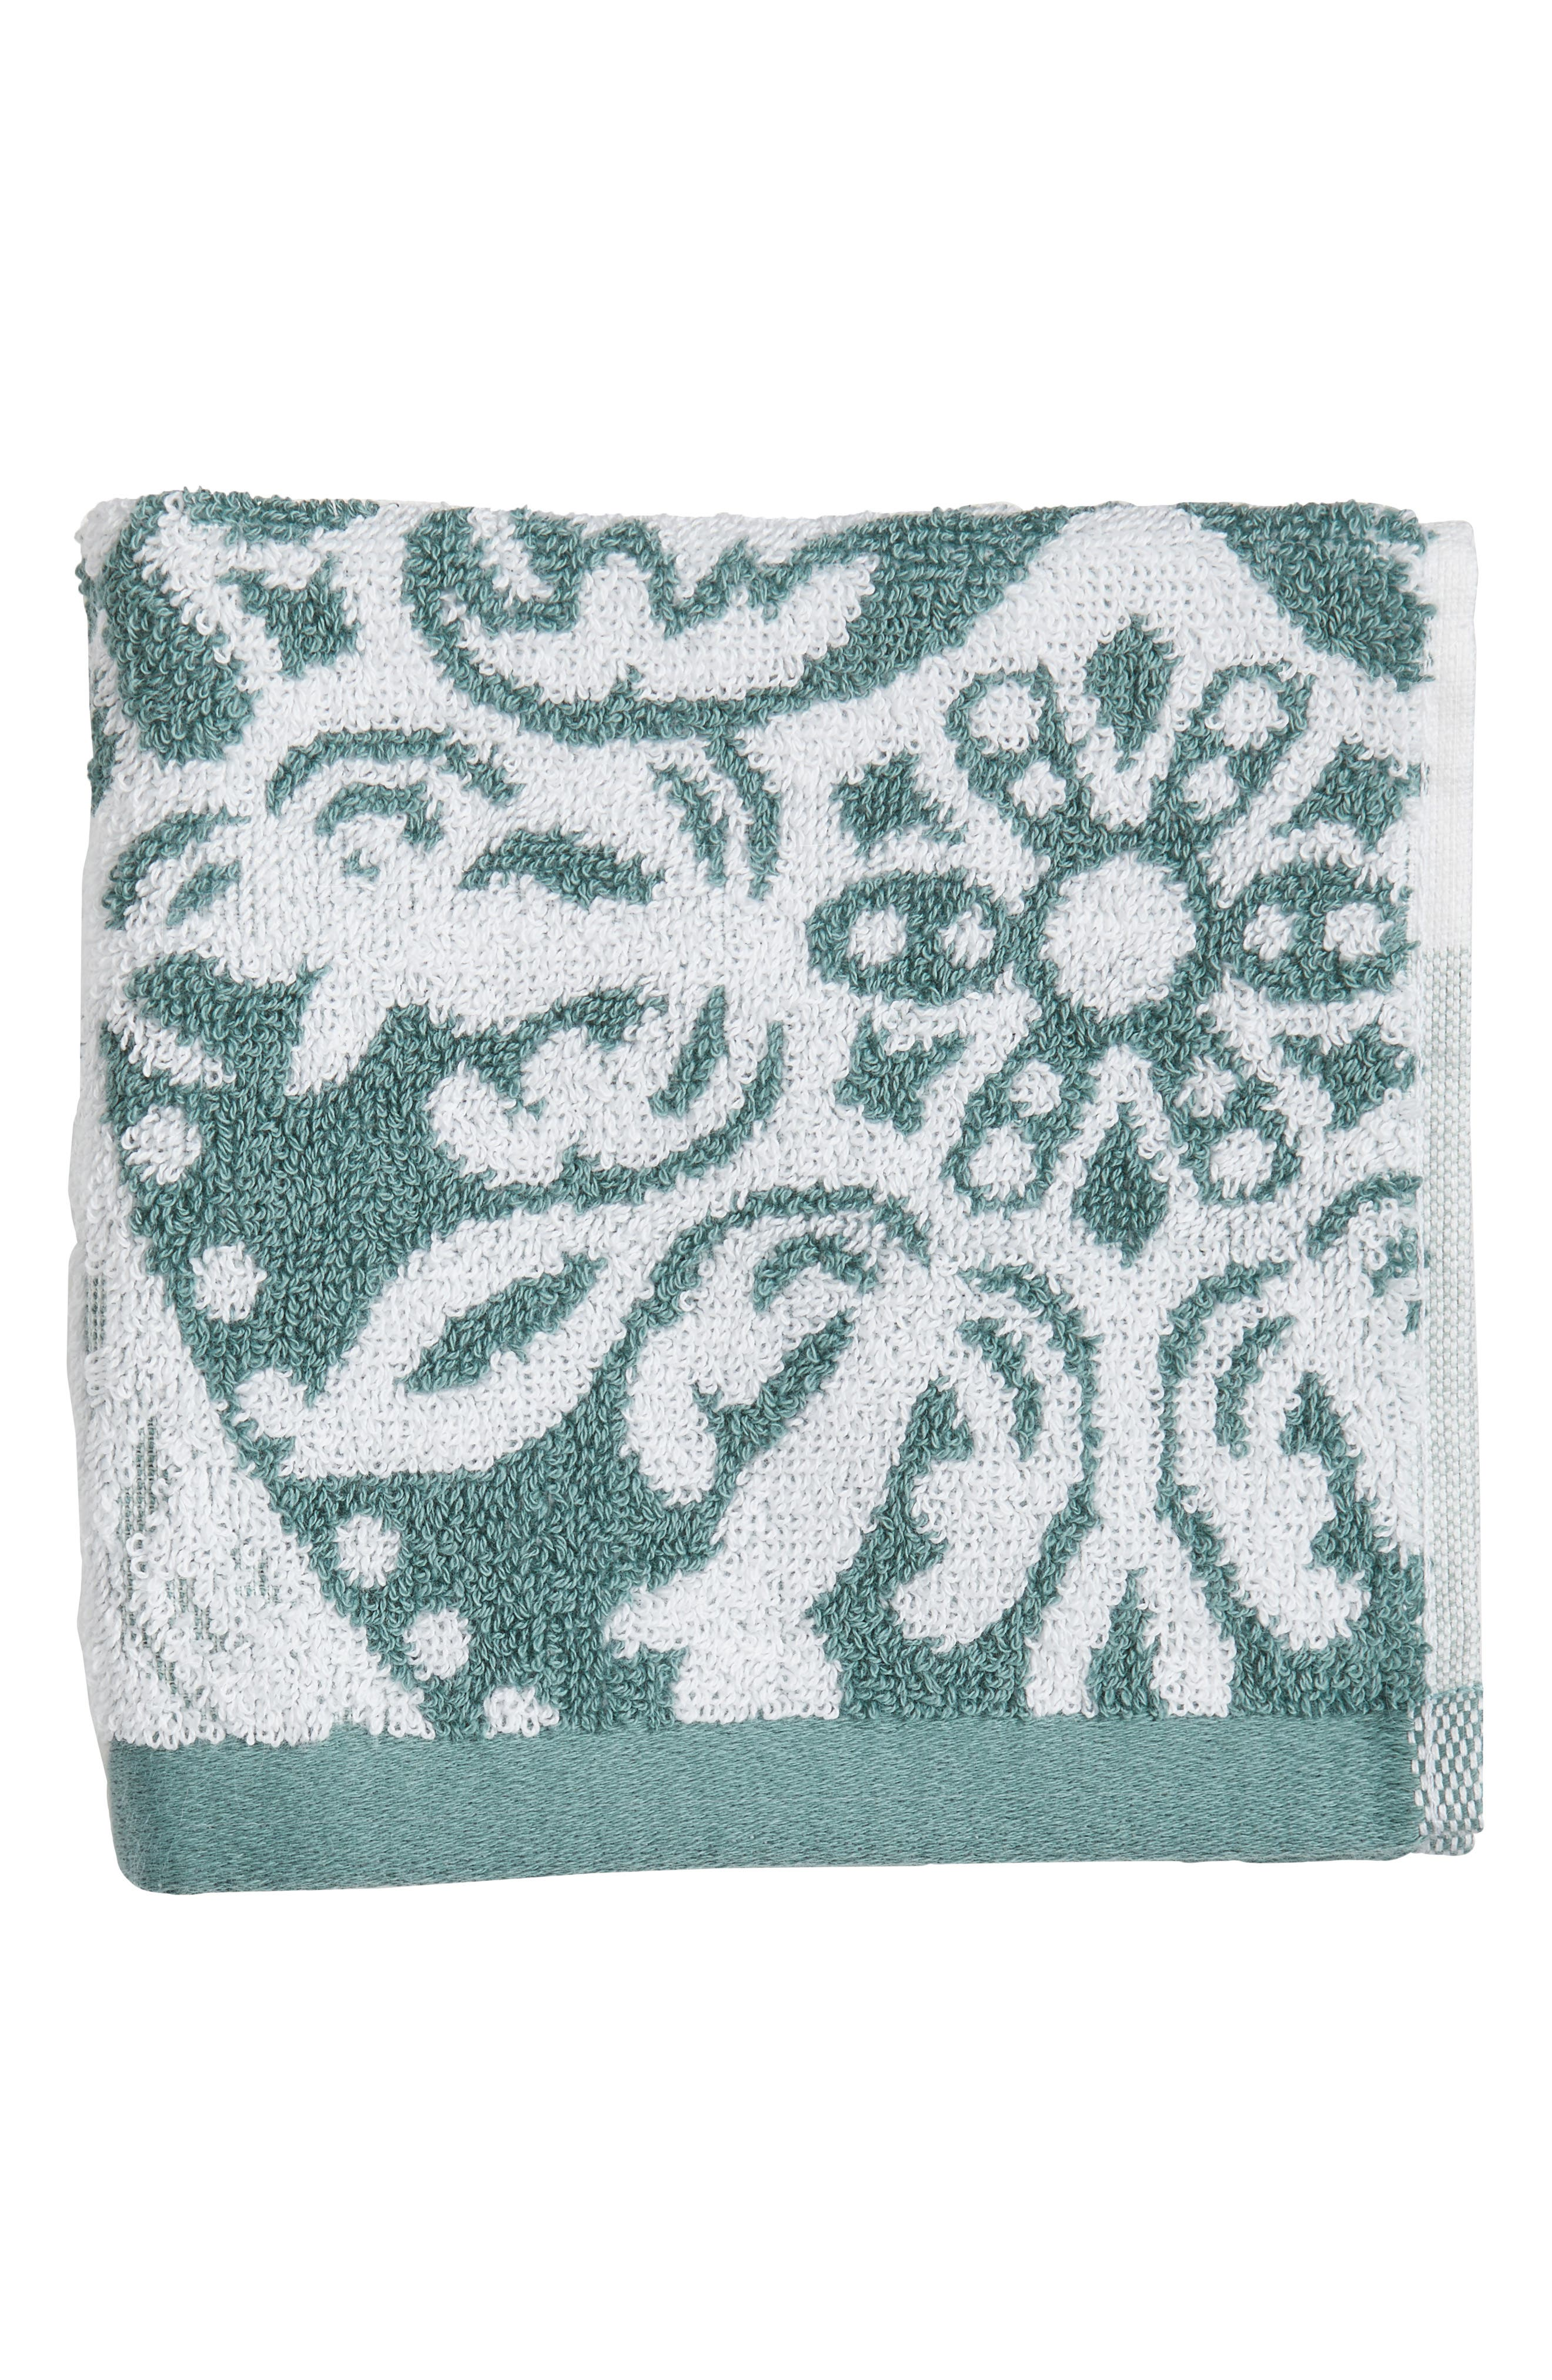 Nordstrom at Home Fan Ombré Washcloth (2 for $17)